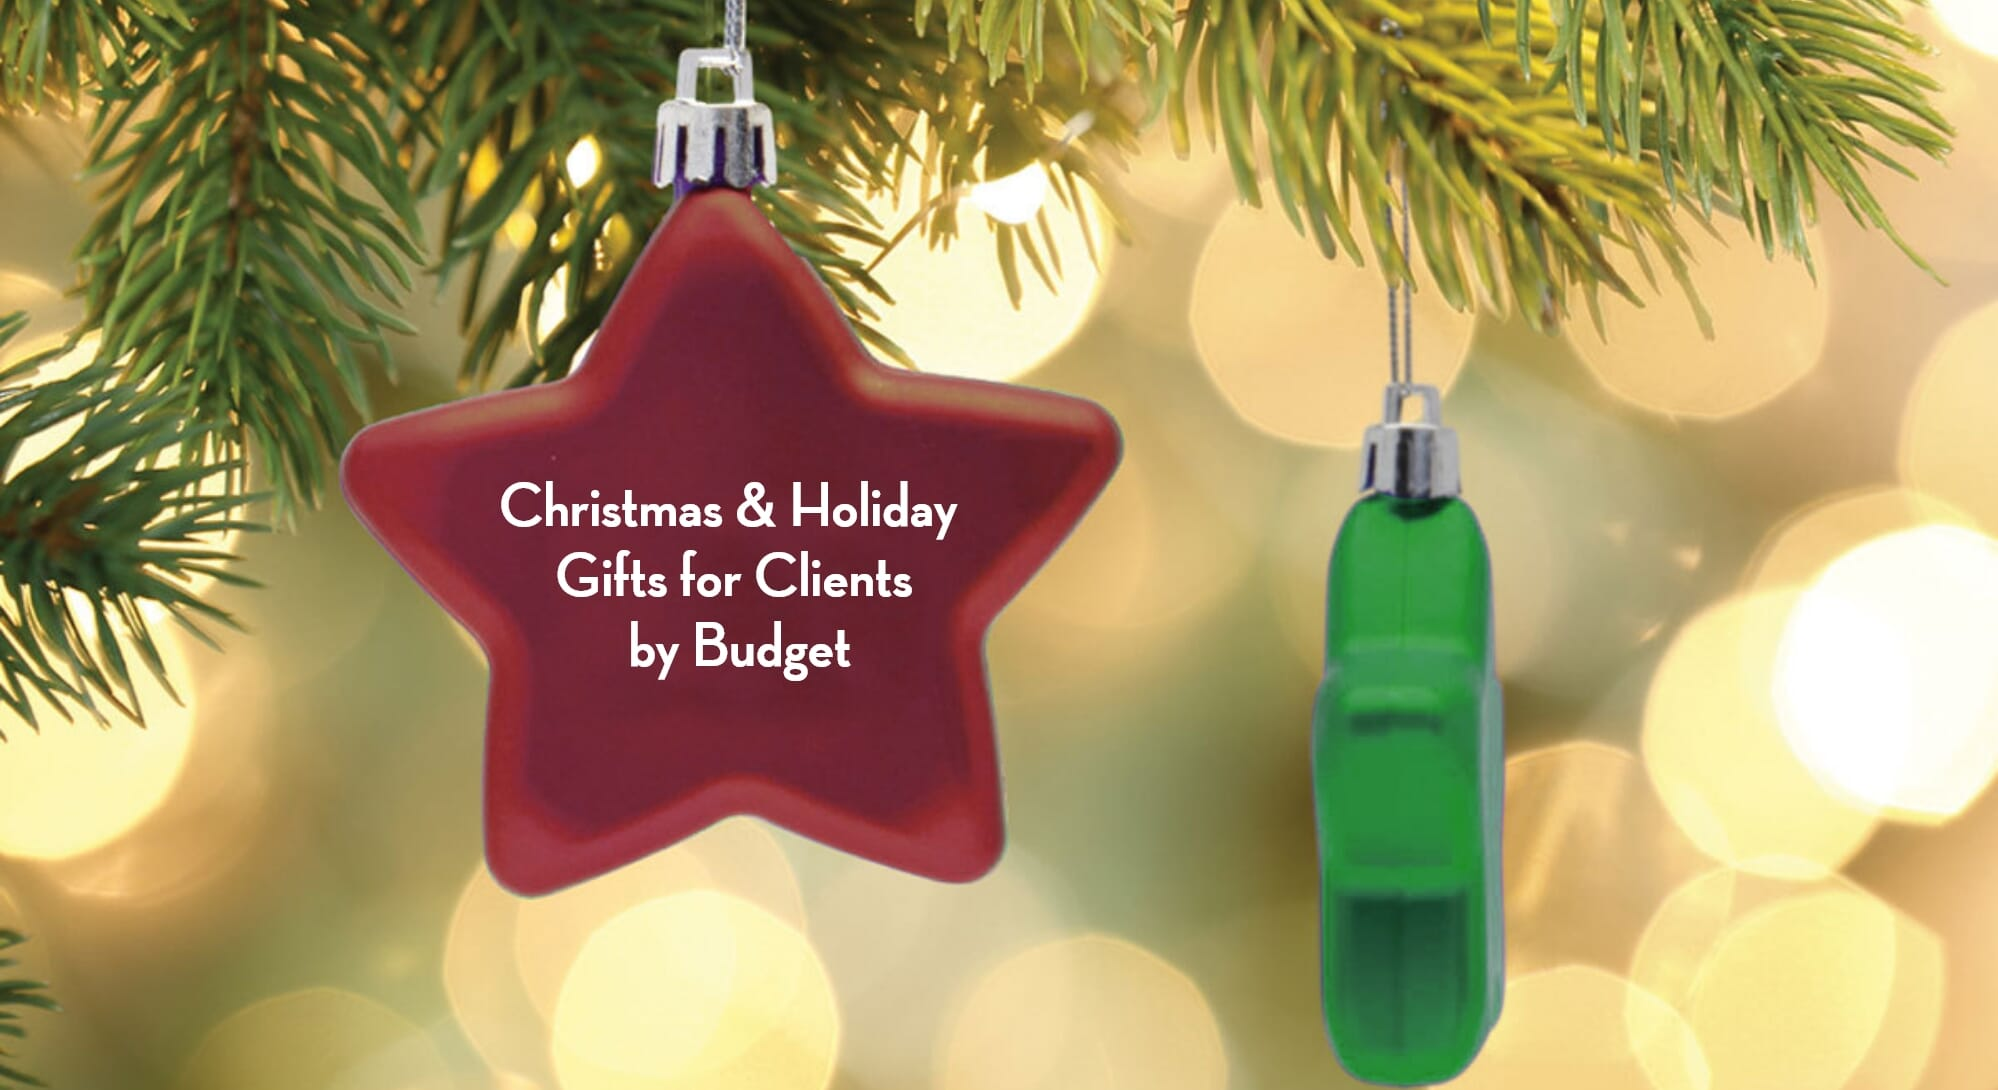 Christmas & Holiday Gifts<br>for Clients by Budget